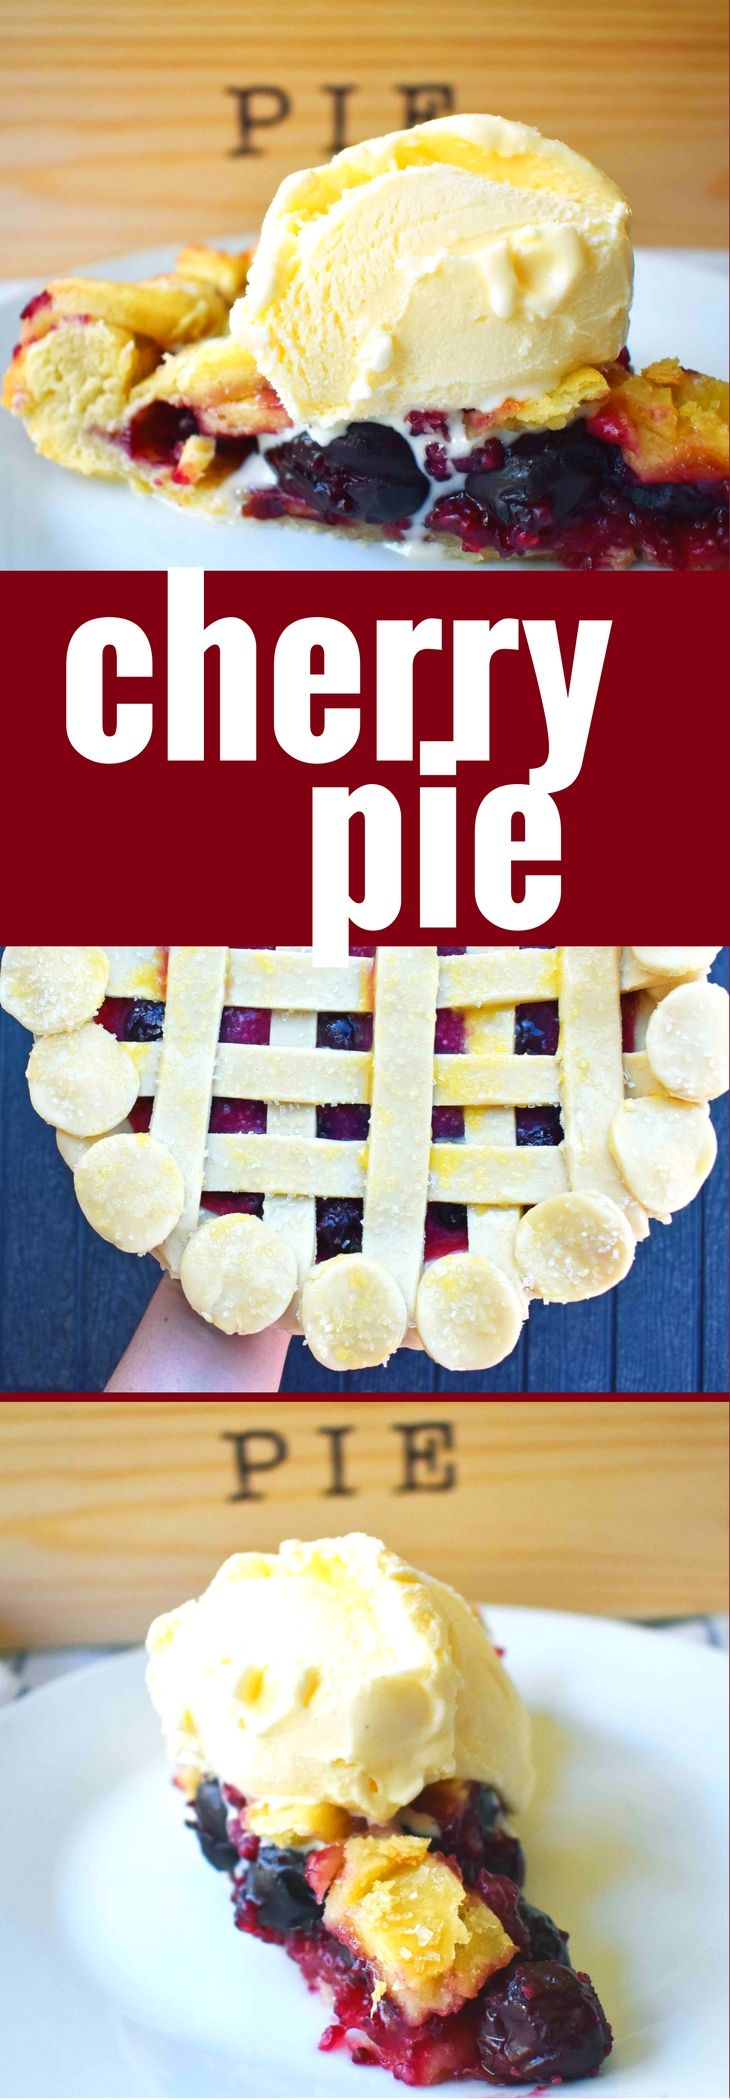 Classic Cherry Pie recipe made with homemade perfectly sweetened cherry pie filling and a buttery, flaky pie crust. It's the perfect cherry pie for the Thanksgiving table.